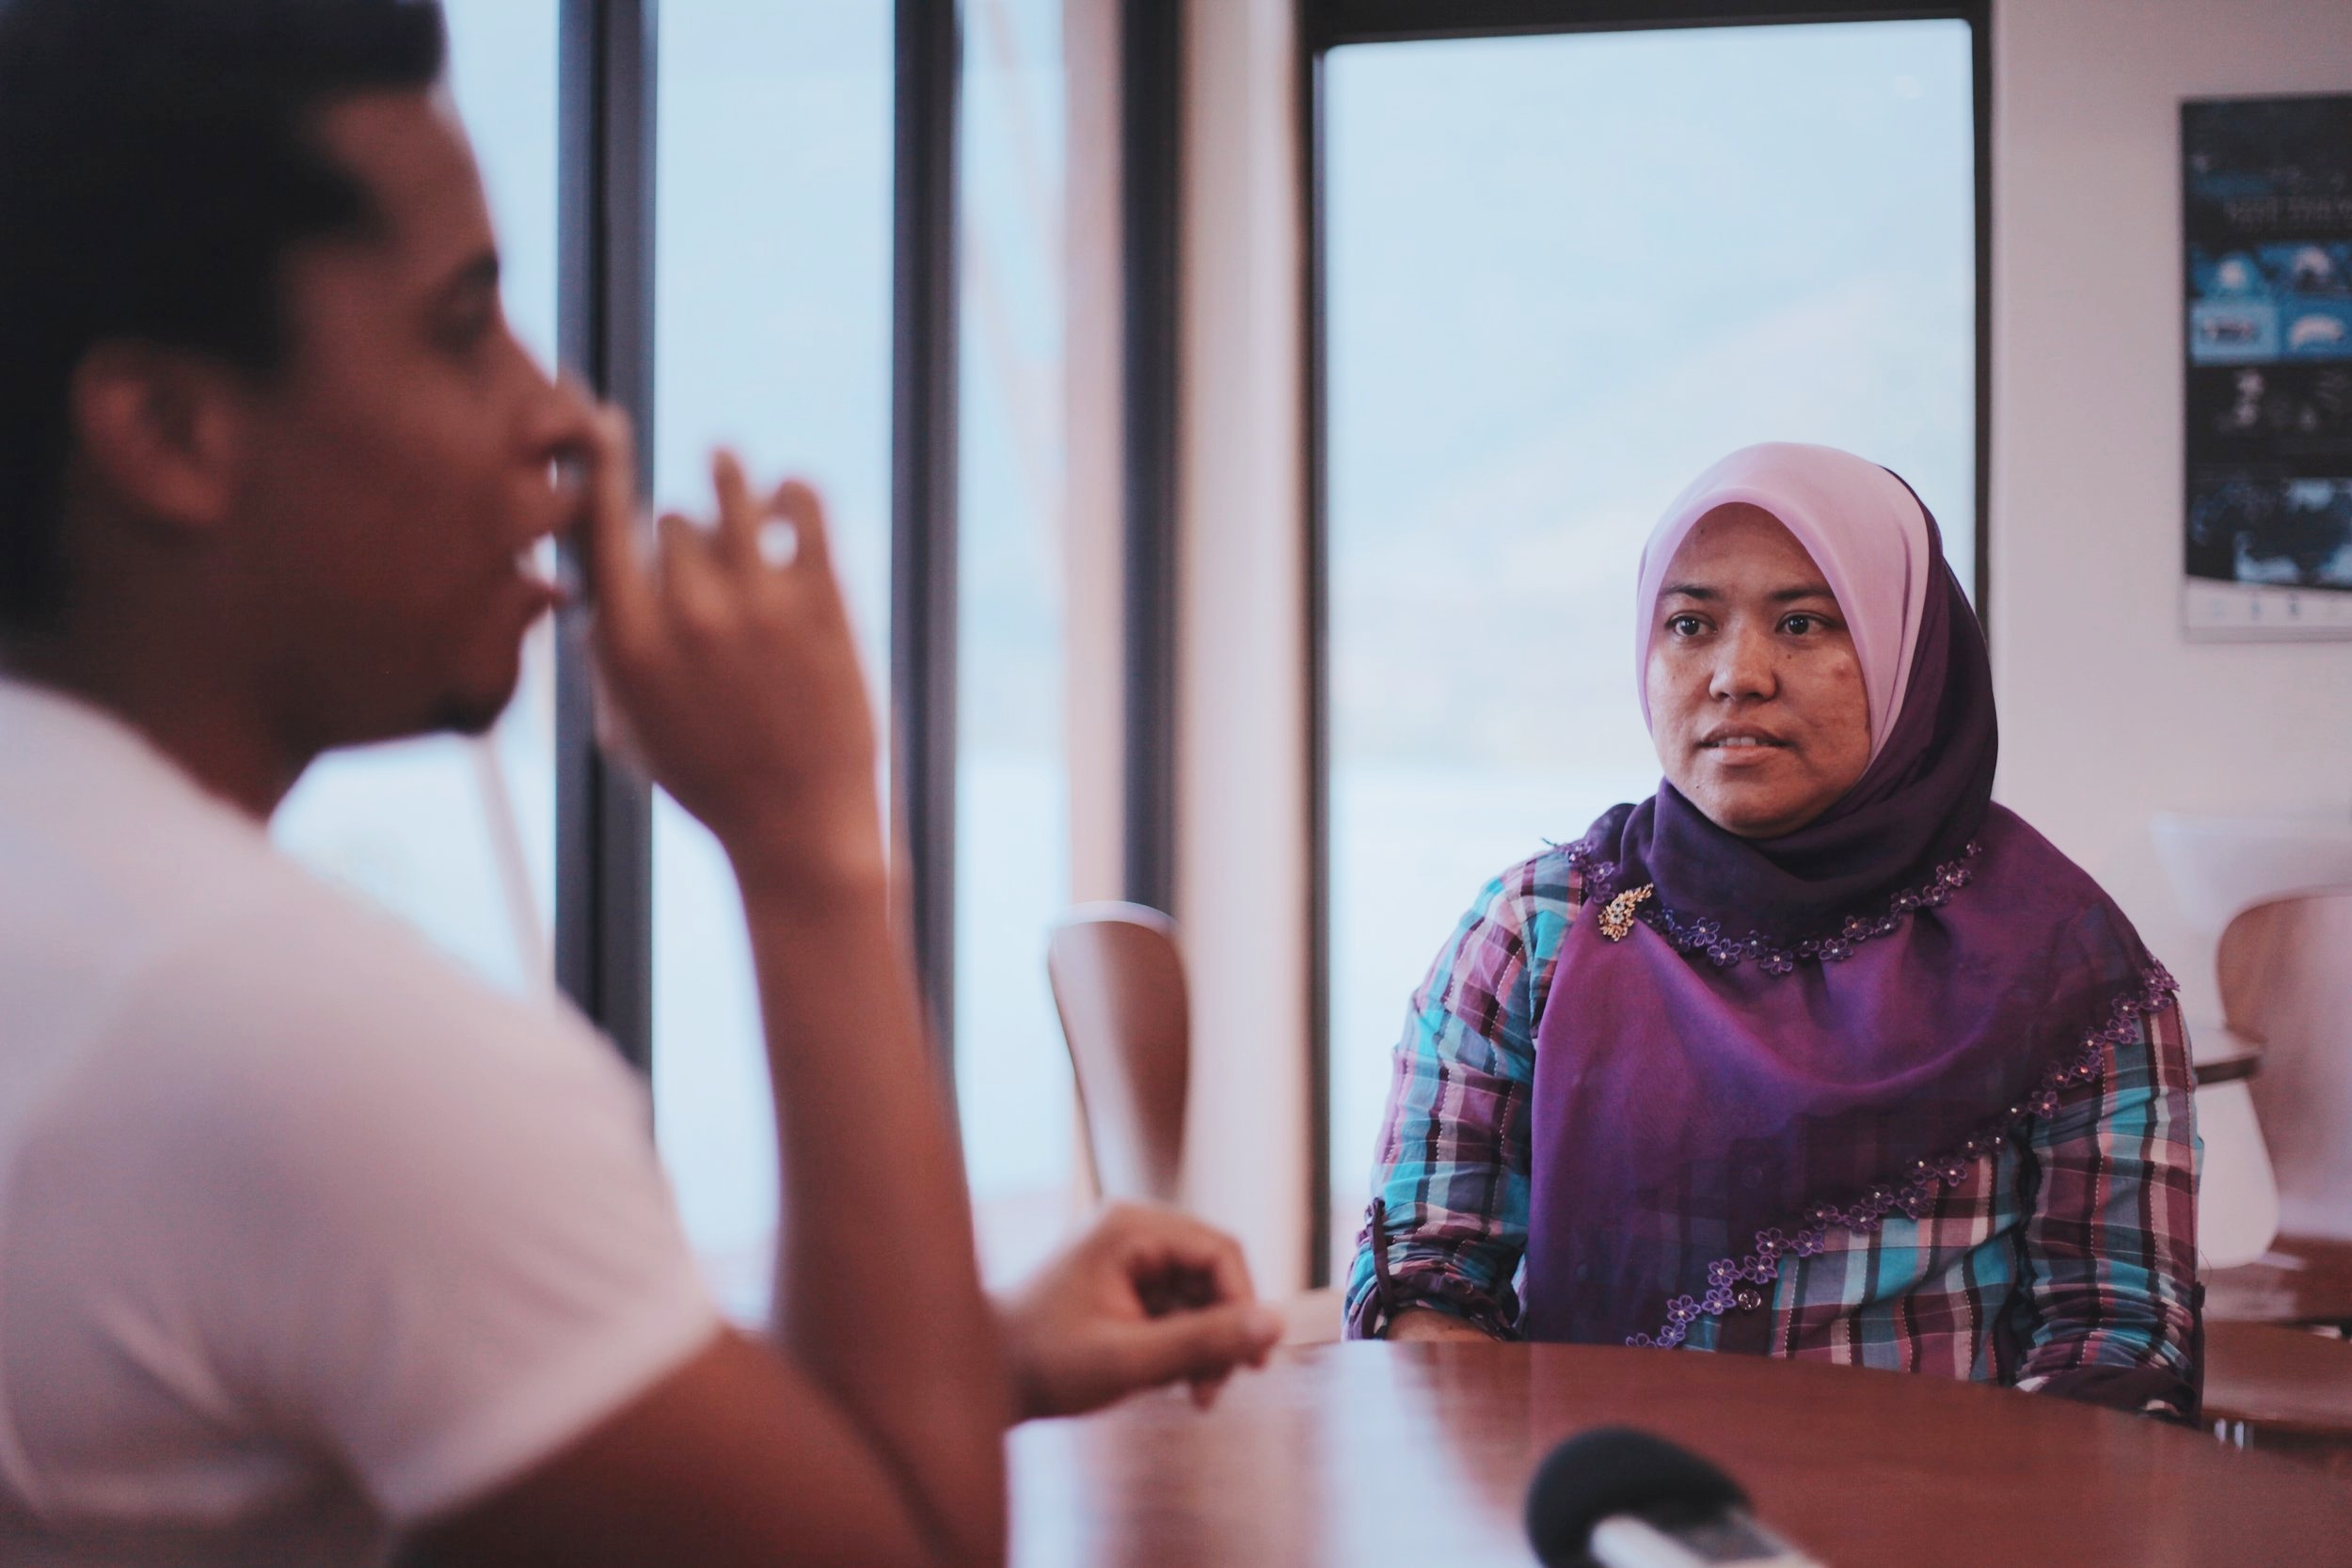 Kak Ros listens attentively to Gerald's questions